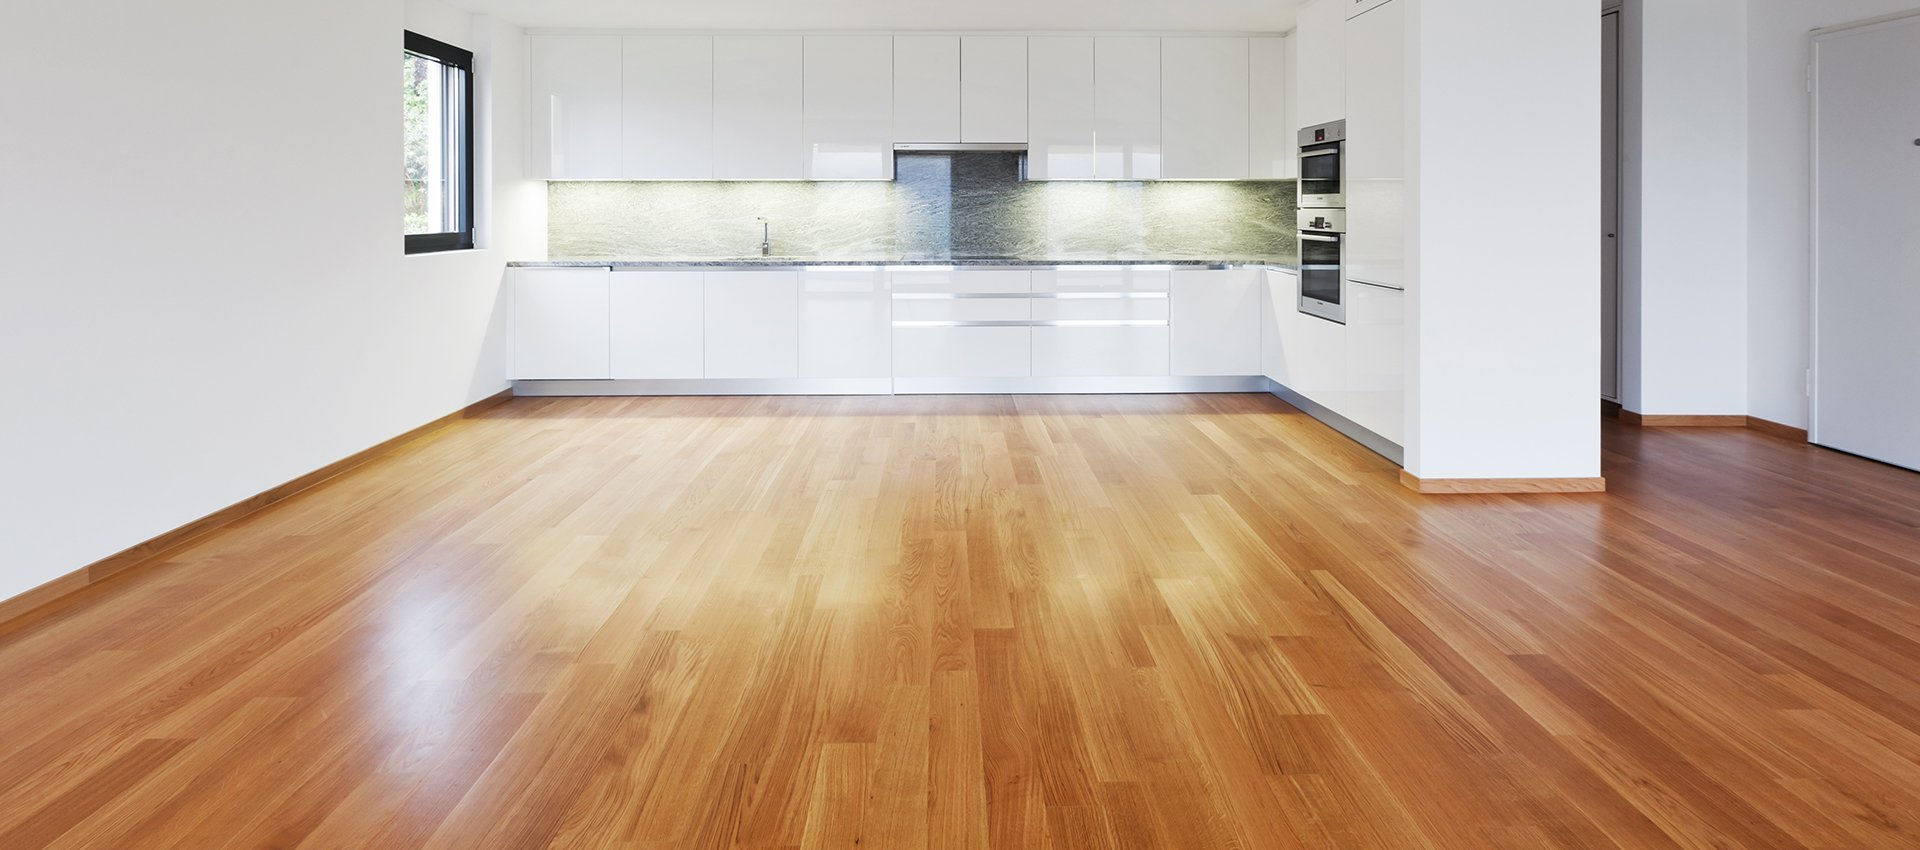 wooden flooring and skirting in kitchen